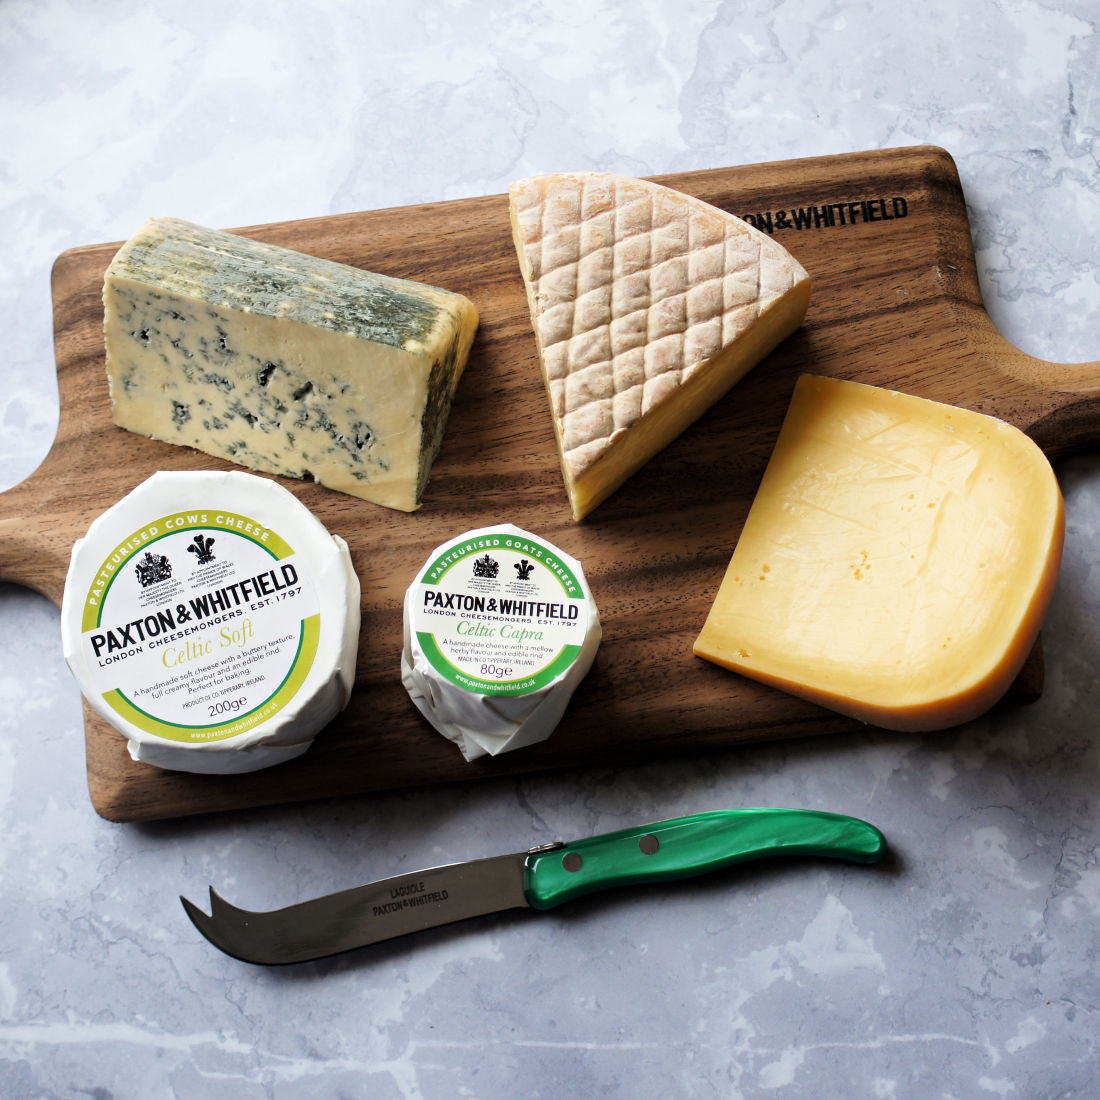 230-Taste-of-Ireland-Irish-Cheeseboard-Collection-Main-Low-Res-Web